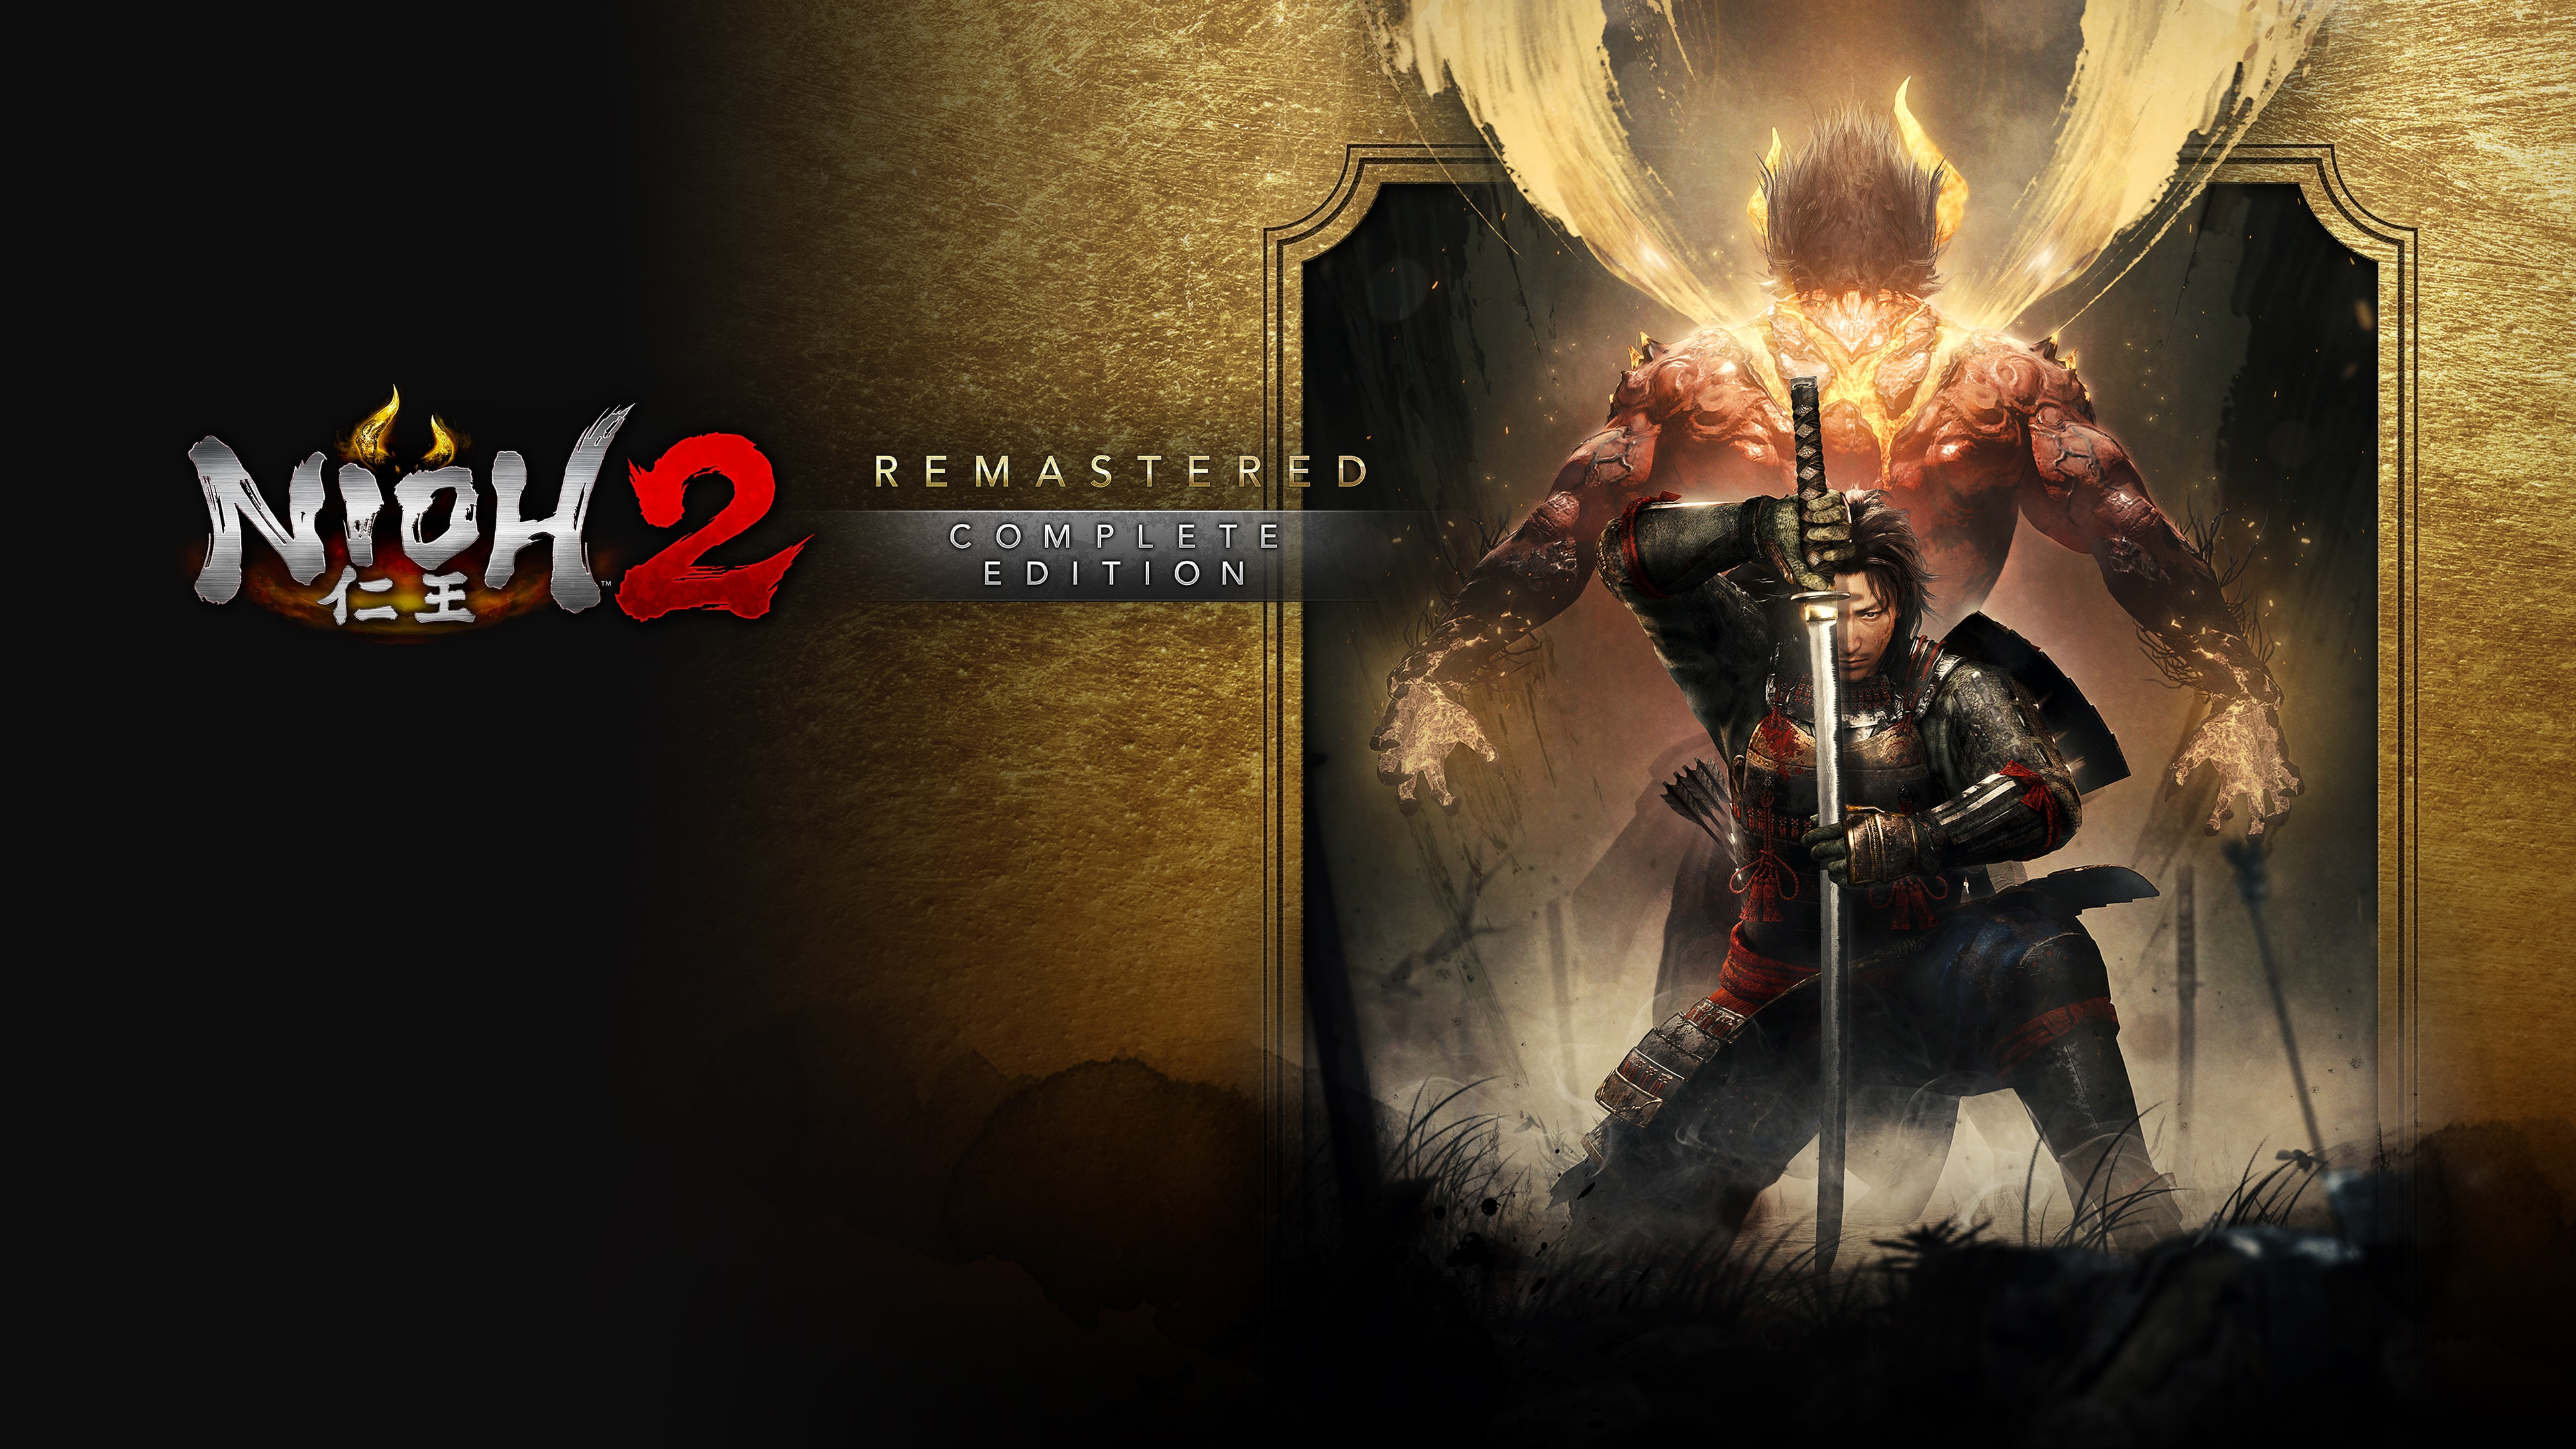 Nioh 2 Remastered – The Complete Edition PS4 & PS5